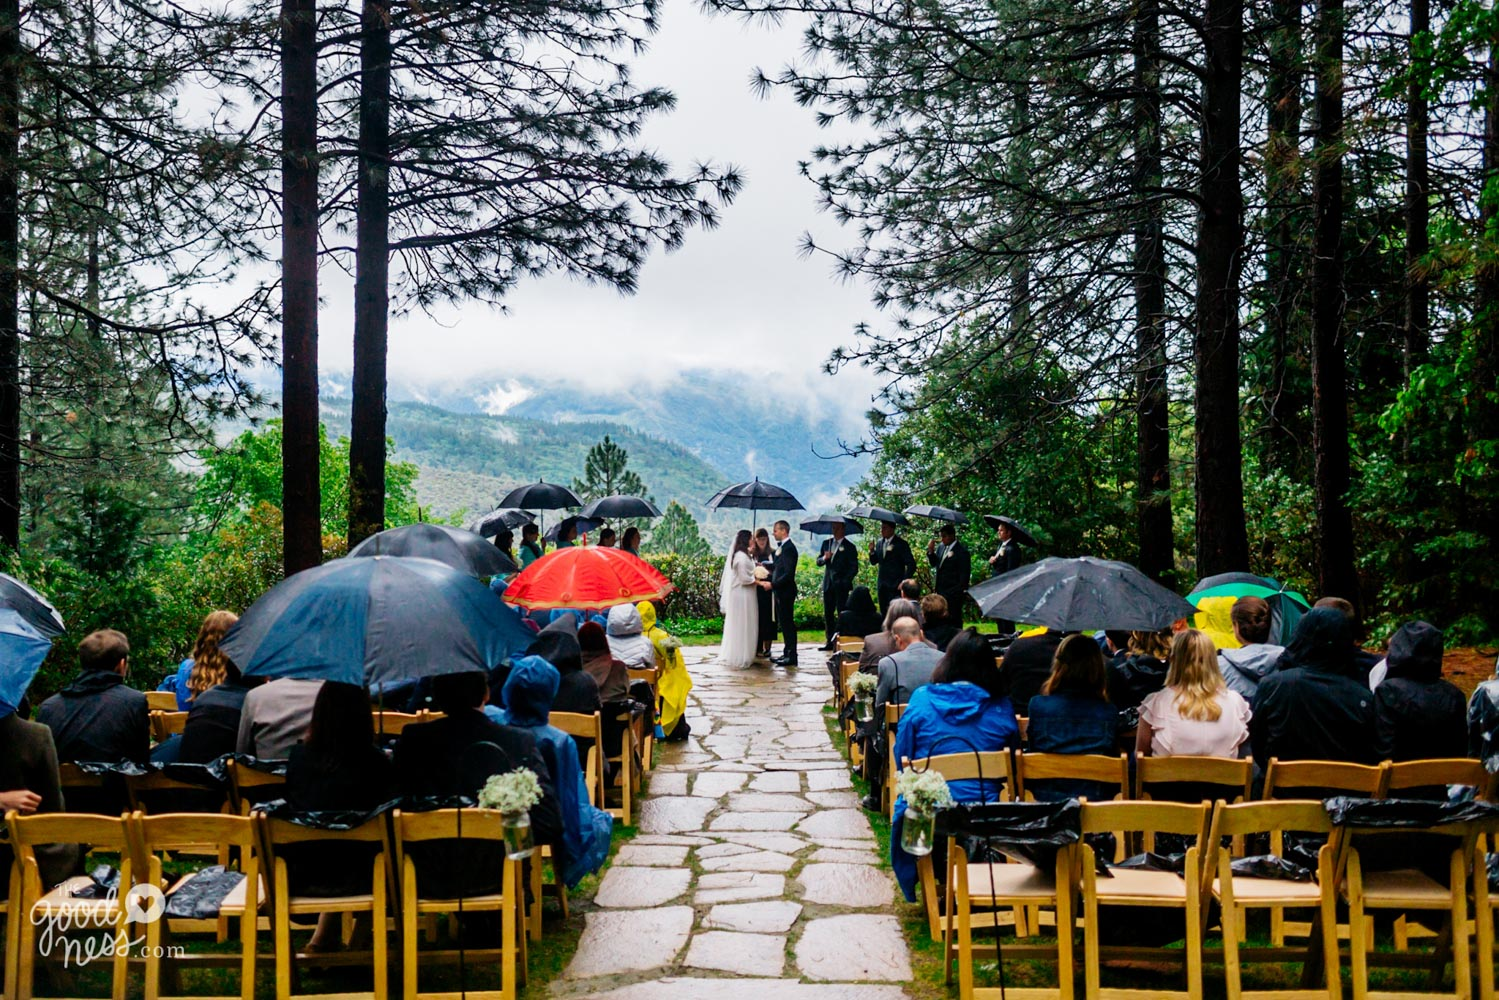 View of rain at Grand Sierra Pointe wedding ceremony site in Foresthill, California, with guests wearing rain slickers and holding umbrellas, and bridal party members also holding umbrellas